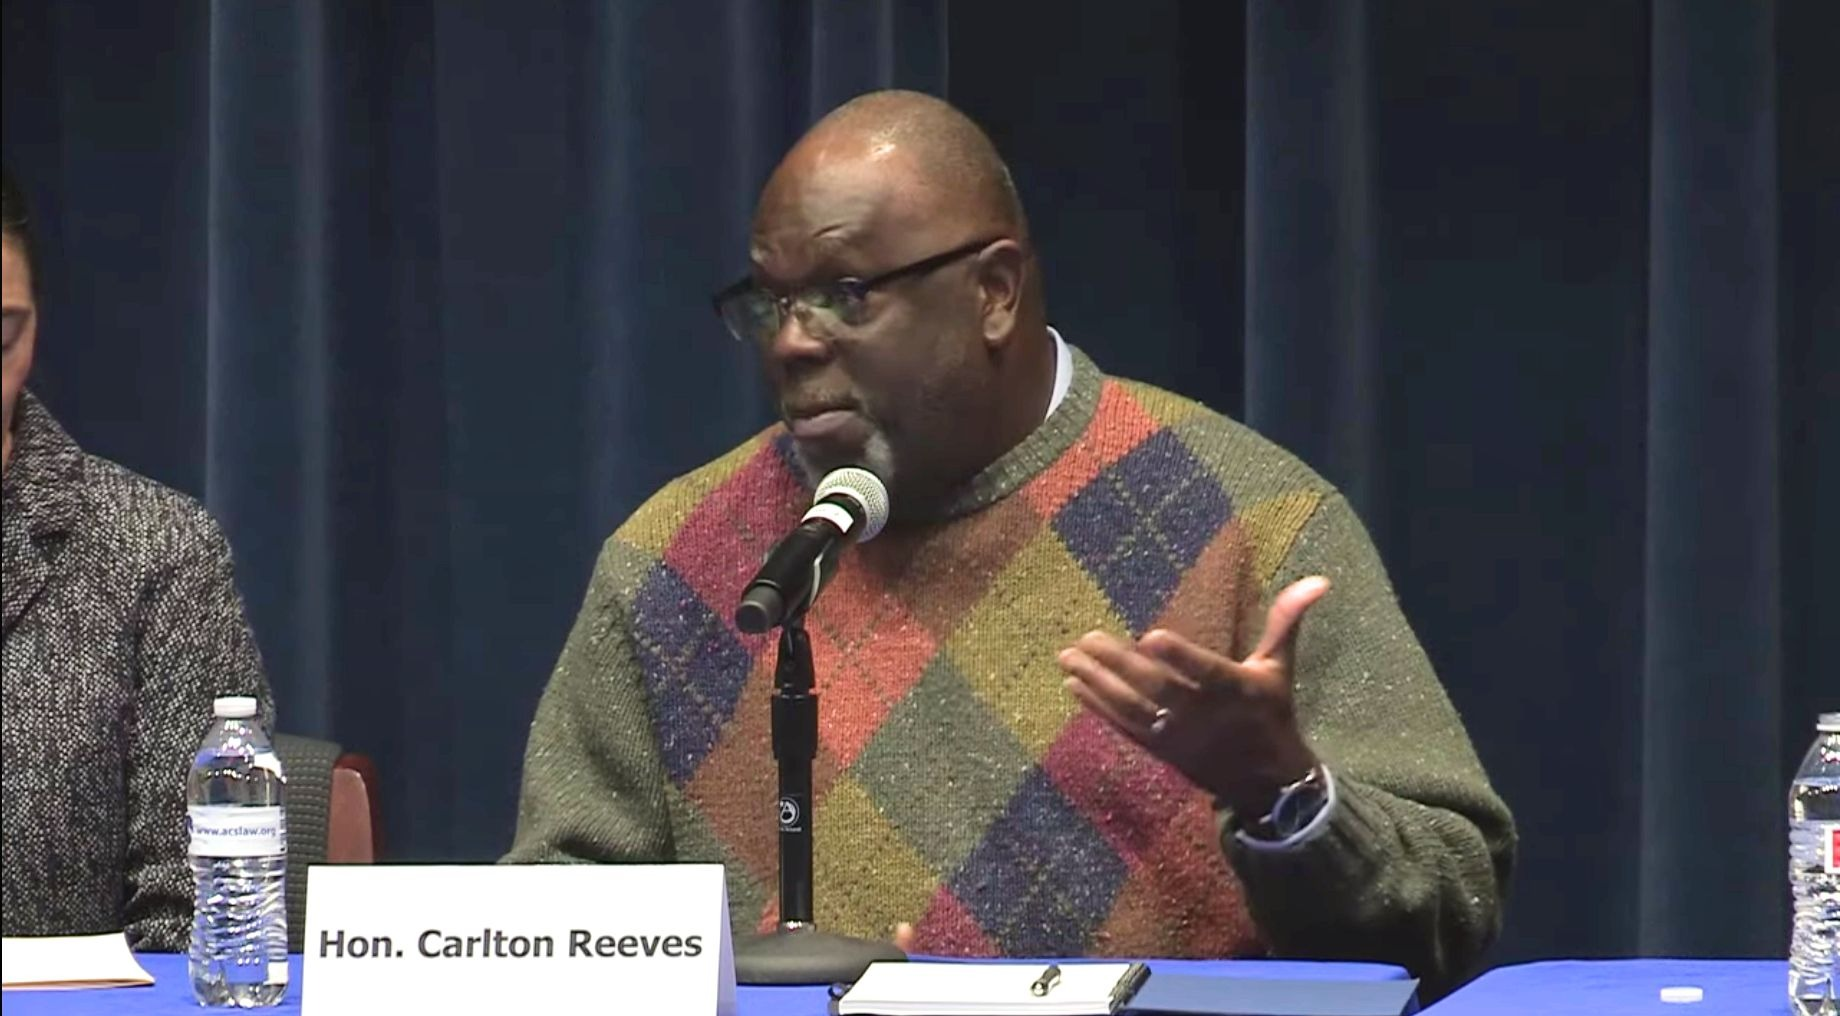 Judge Carlton Reeves speaks to an American Constitution Society conference at the University of Virginia on Feb. 23, 2019. (YouTube screenshot/University of Virginia School of Law)